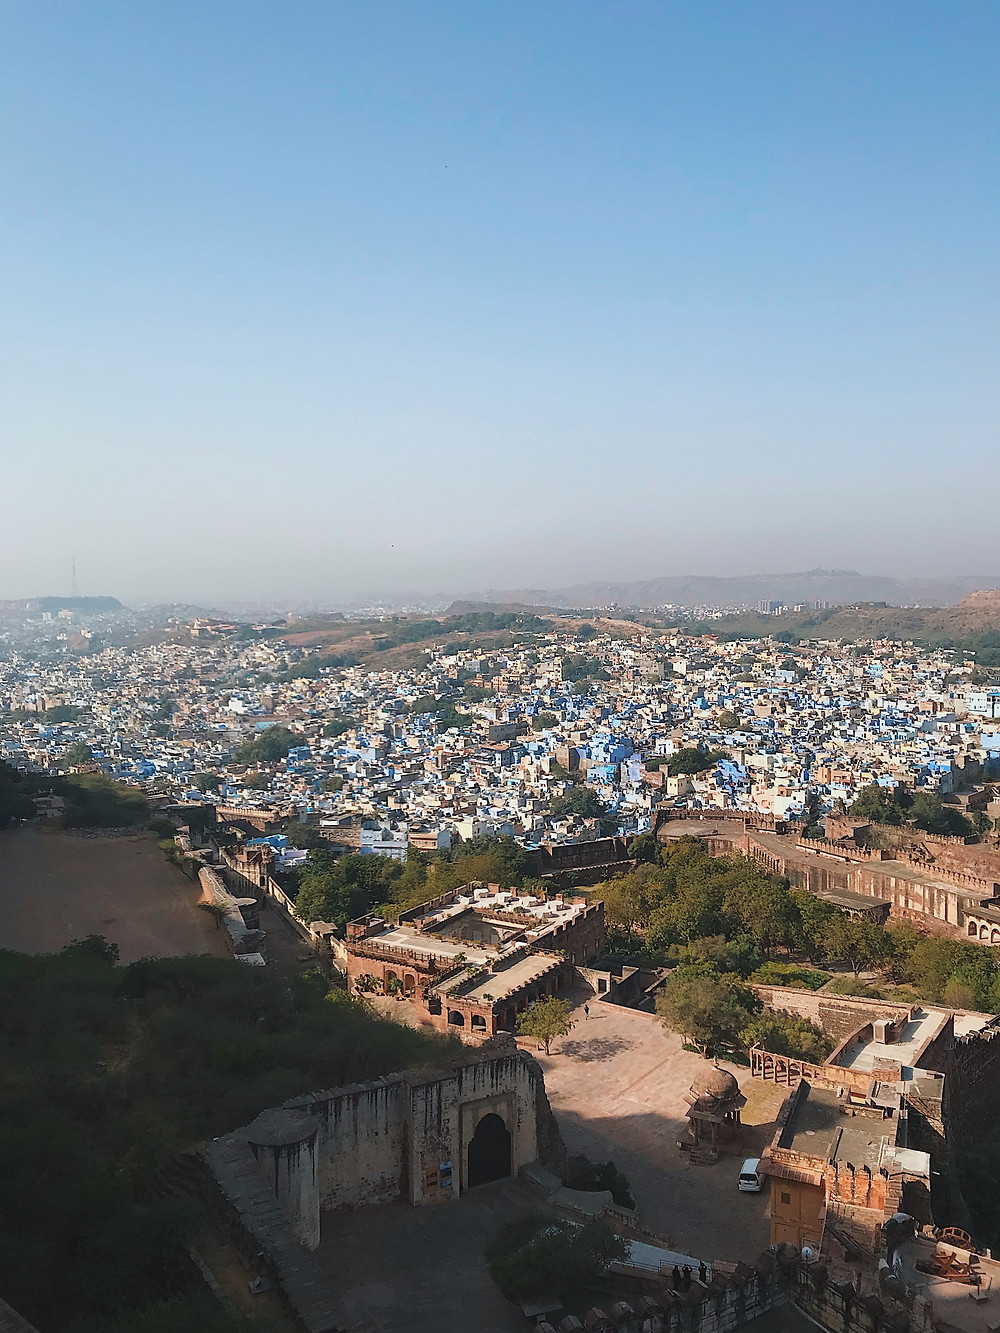 The view of the Blue City of Jodhpur from Mehrangarh Fort in Rajasthan, India